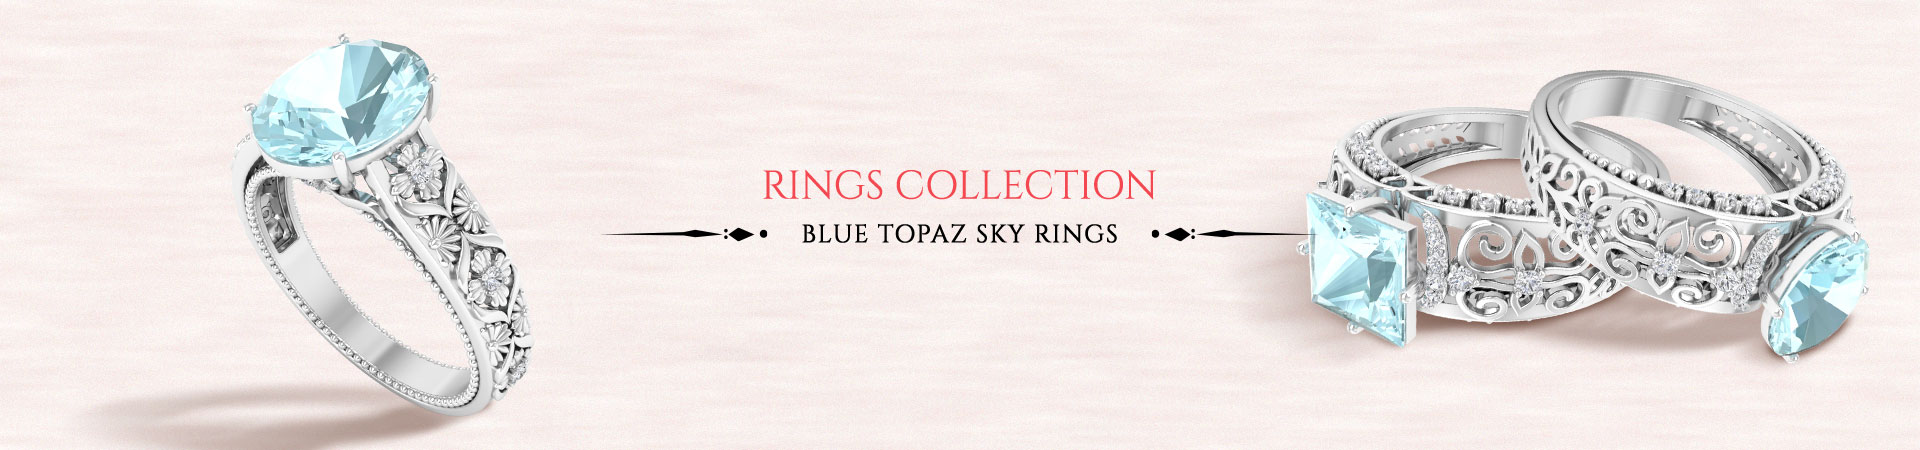 Blue Topaz Sky Rings